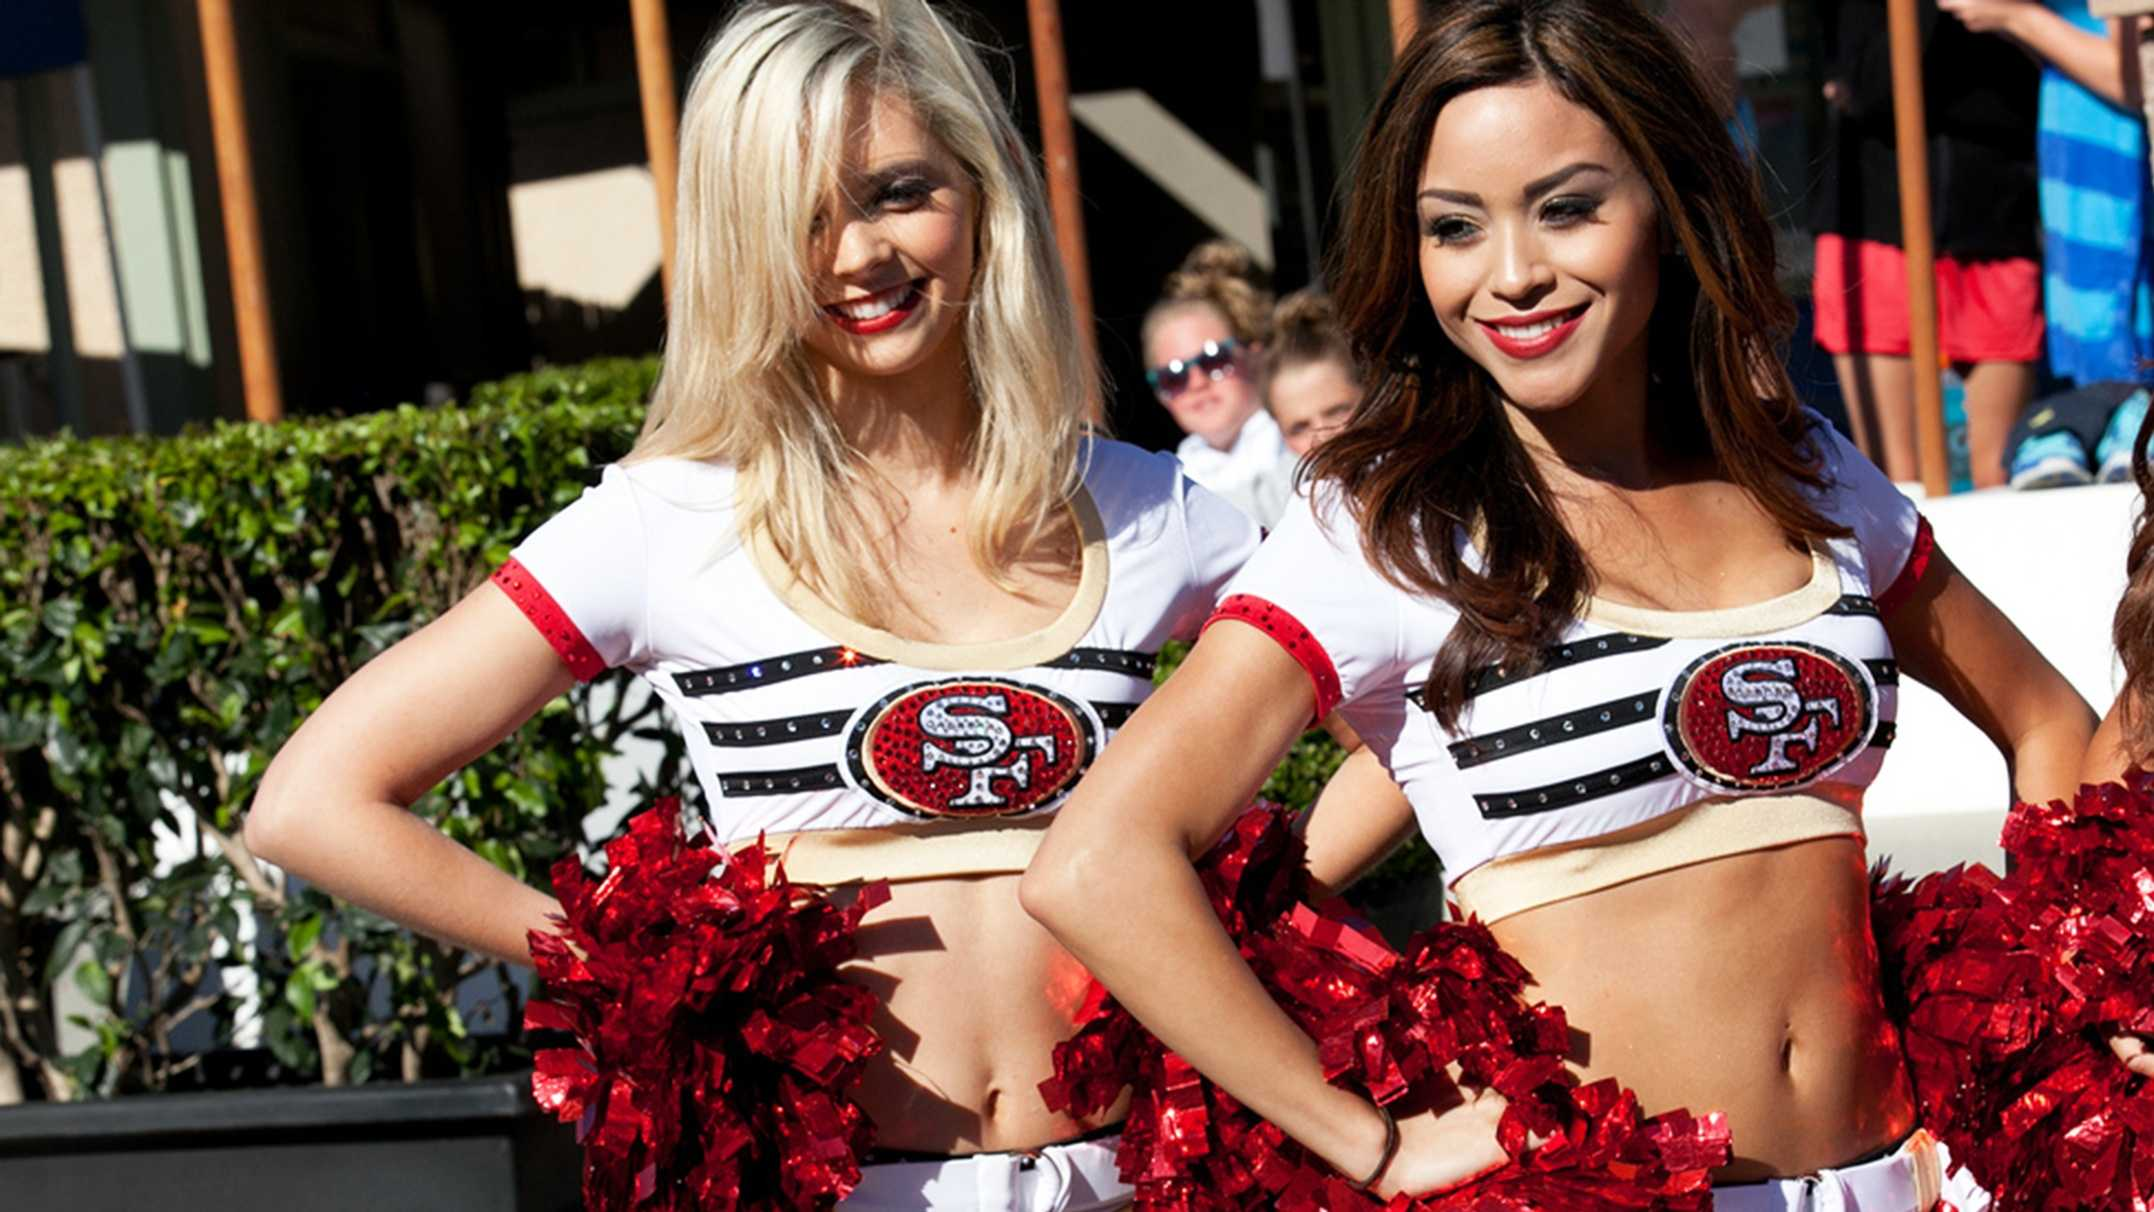 49er Gold Rush cheerleaders